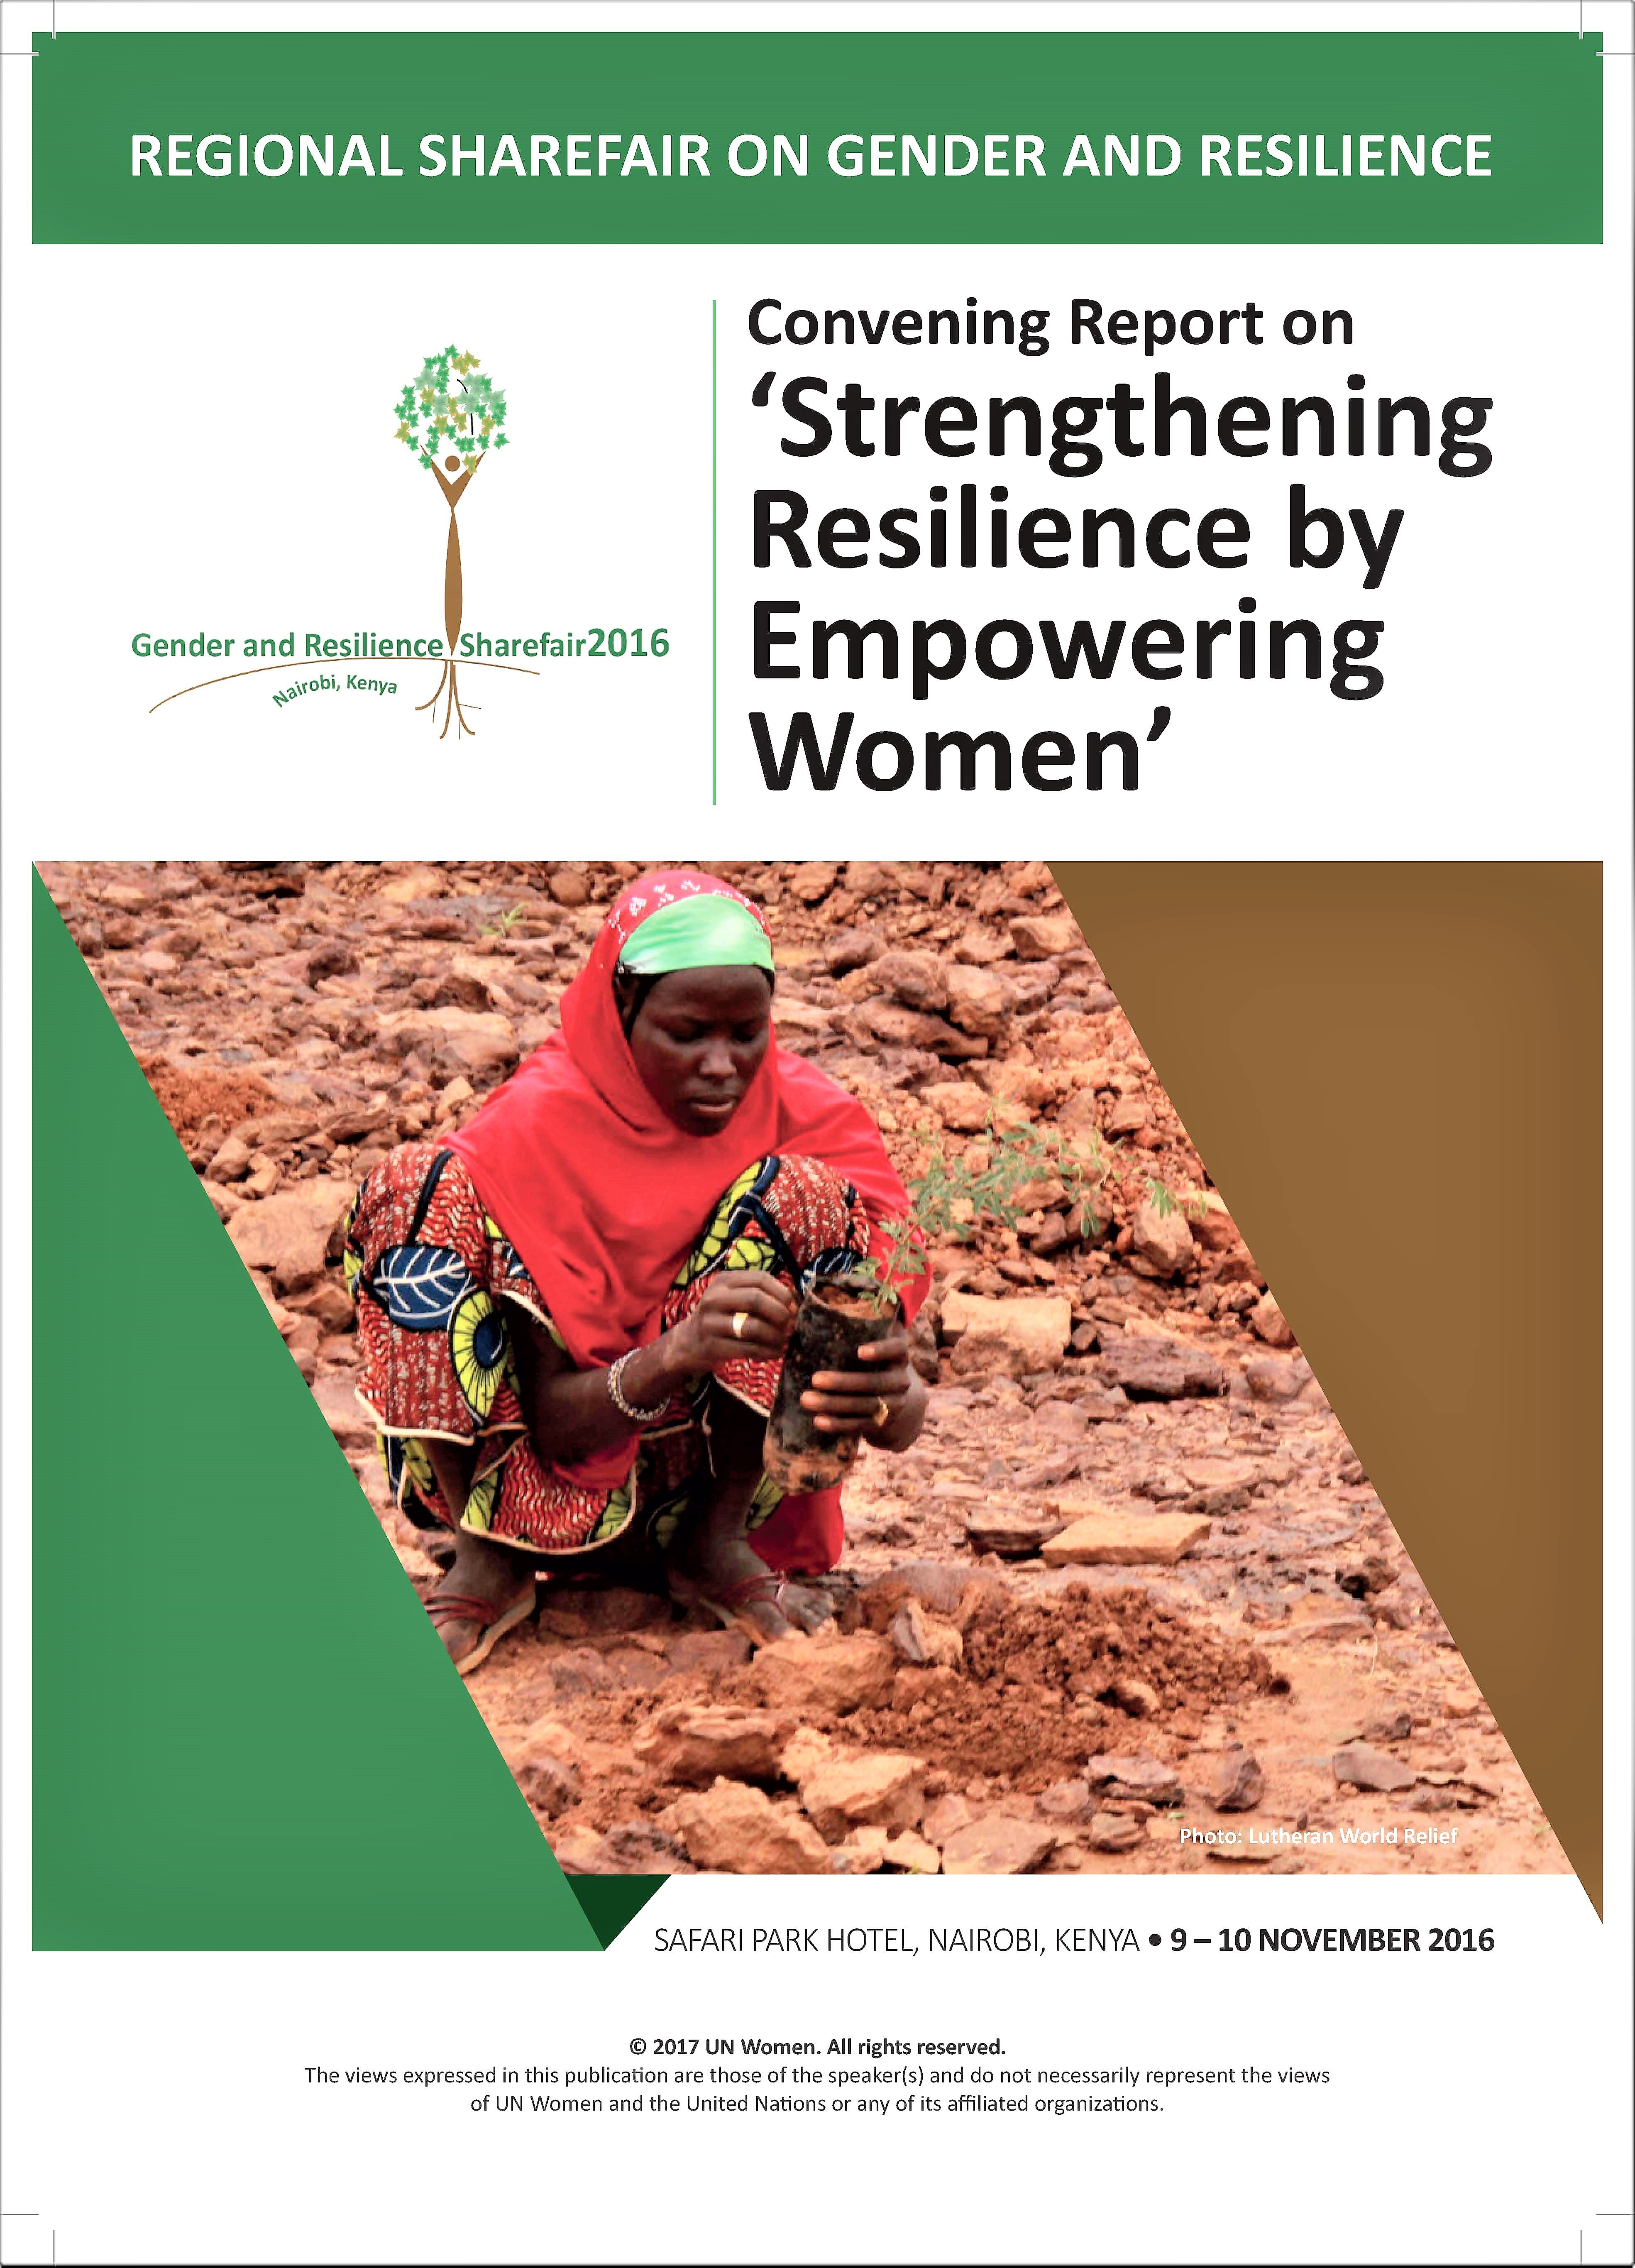 Regional Sharefair on Gender and Resilience in Africa 2016